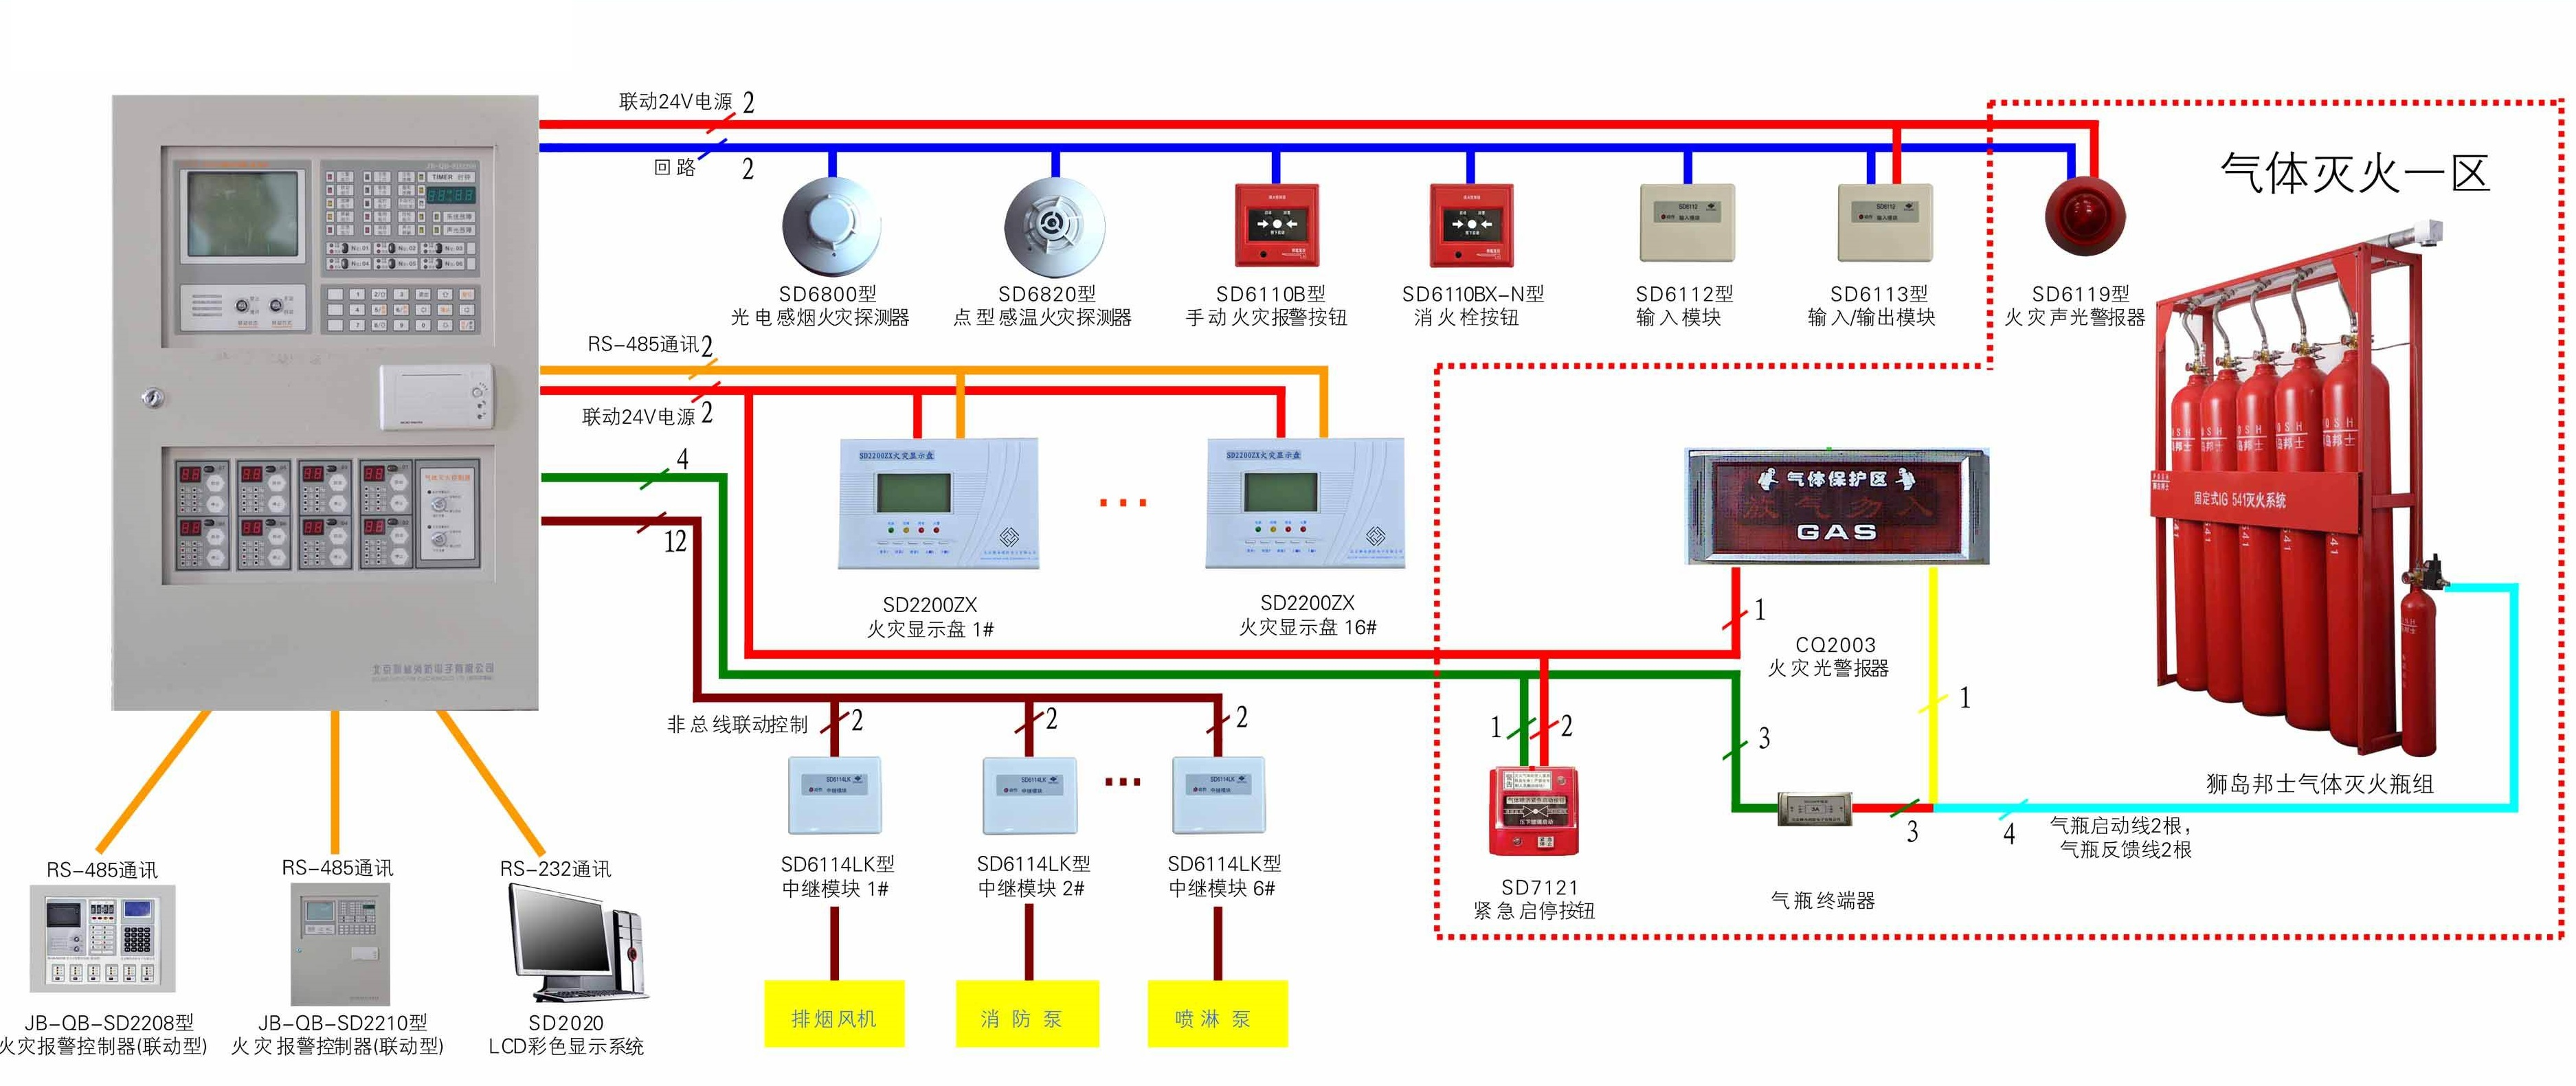 fire alarm controller karr alarm 2040 wiring diagram wiring diagram and schematic design karr 2040a wiring diagram at bakdesigns.co